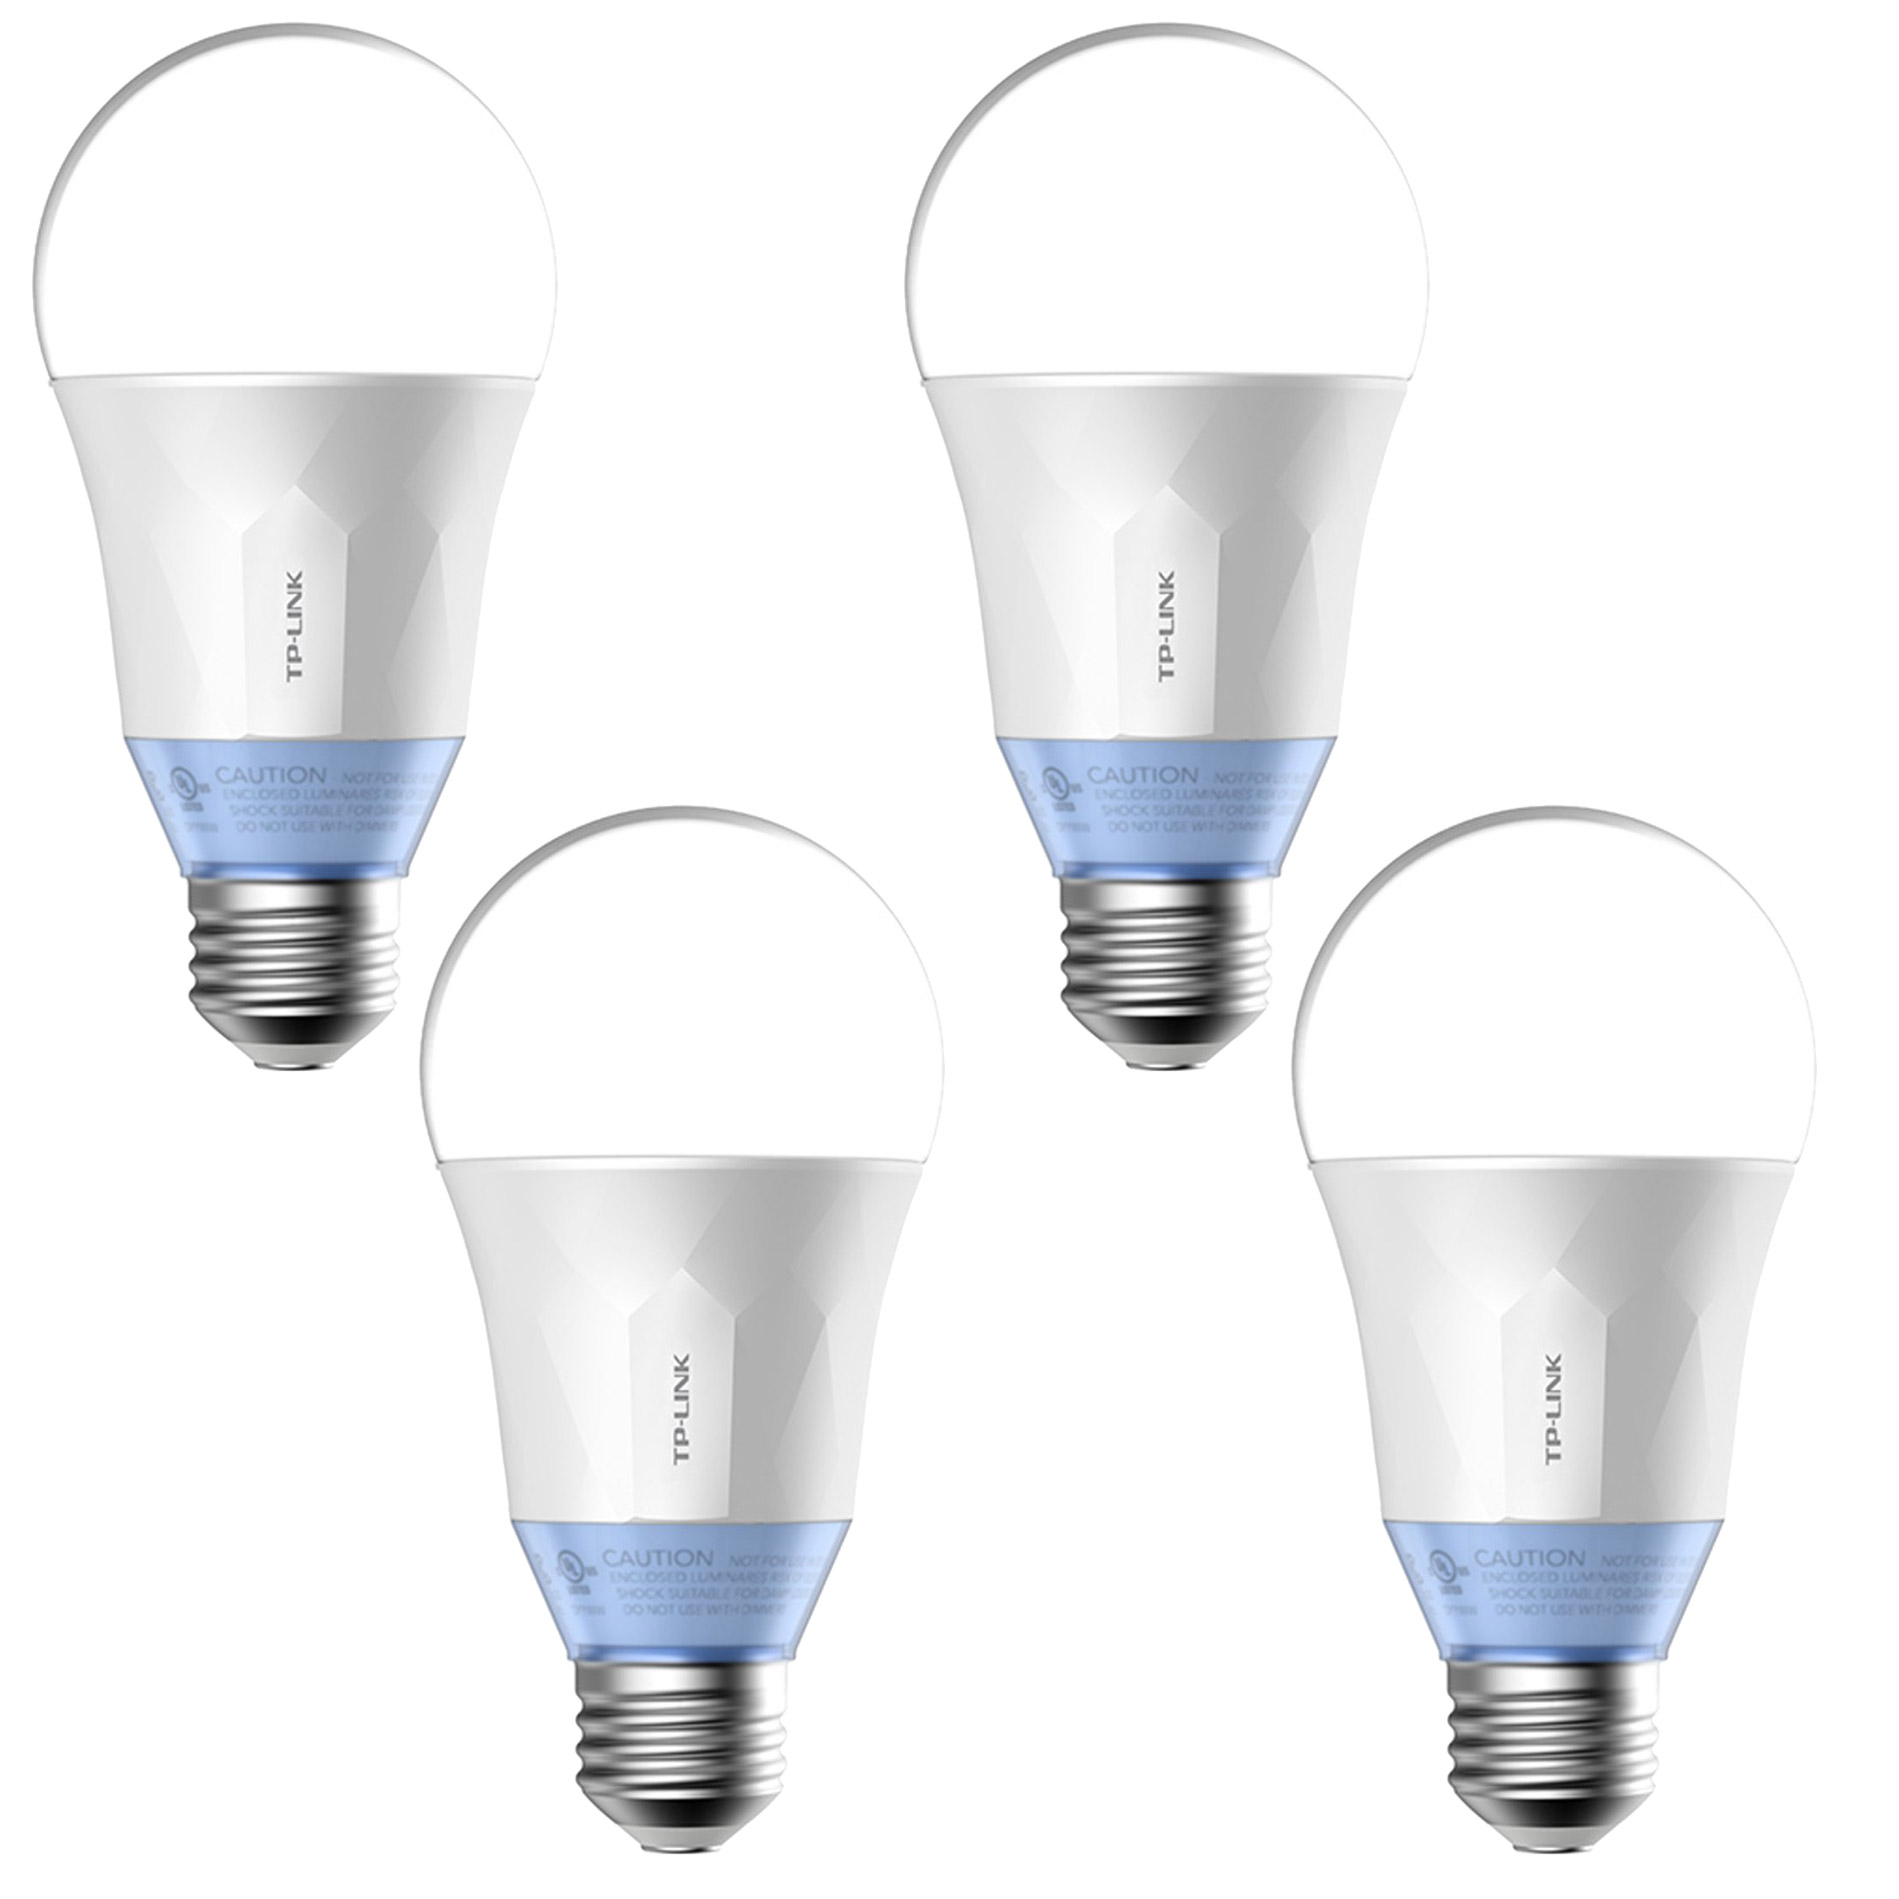 TP-Link Smart WiFi LED 11W Dimmable White Bulb with Voice App Control (4 Pack)